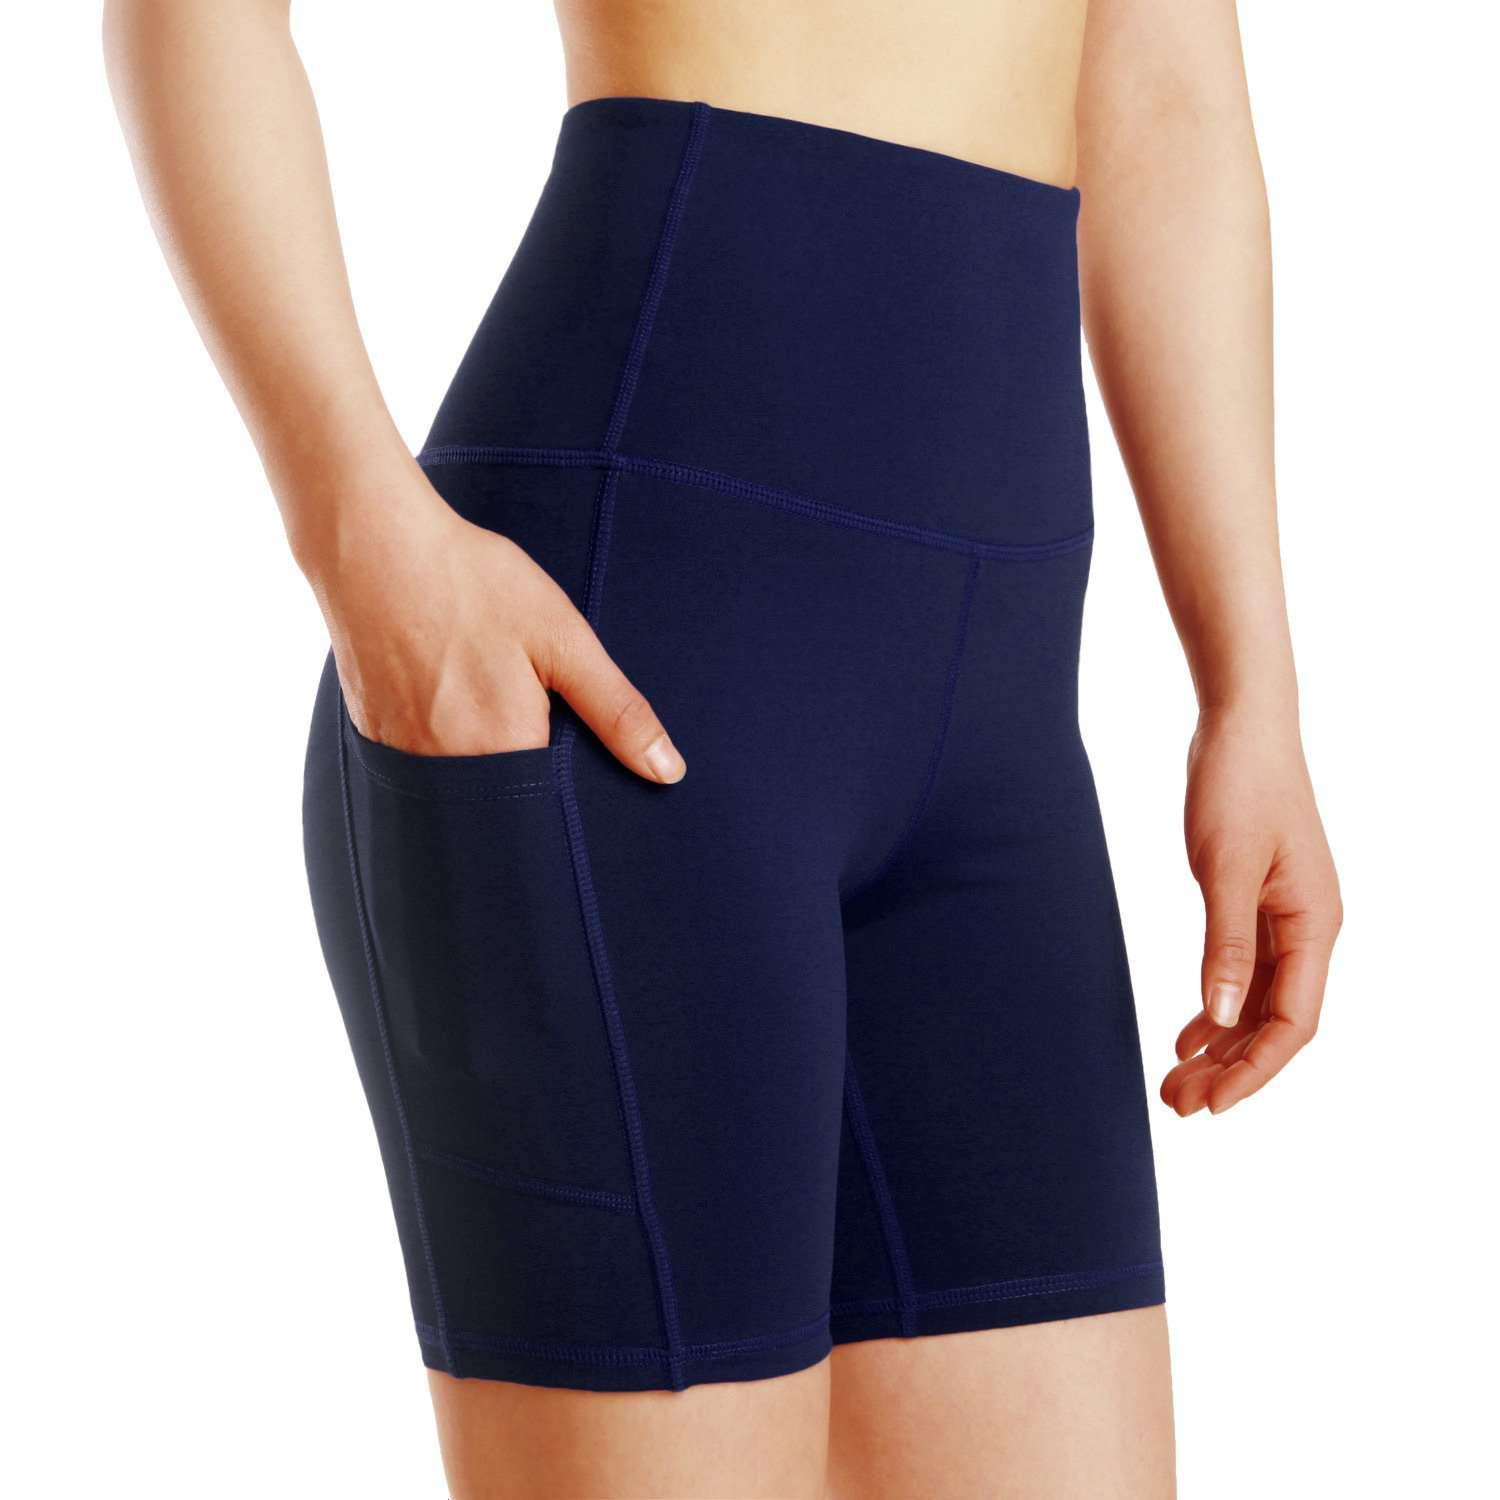 Performance Biker Shorts with Pockets - TrueFeat